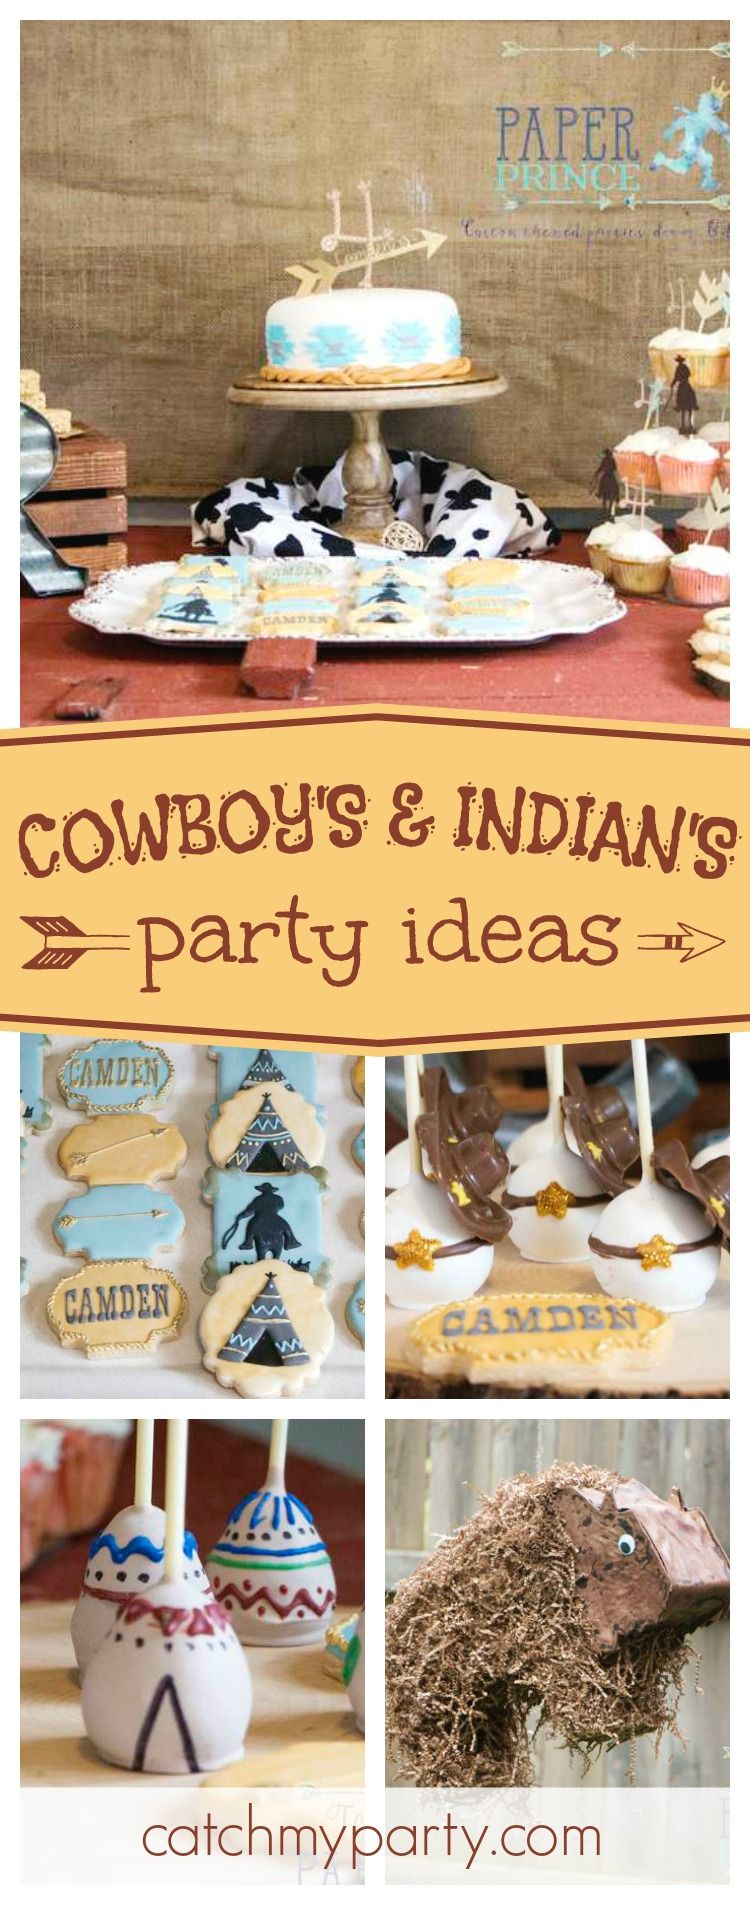 Check out this awesome Cowboys and Indians birthday party. The teepee cake pops are adorable!! See more party ideas and share yours at CatchMyParty.com